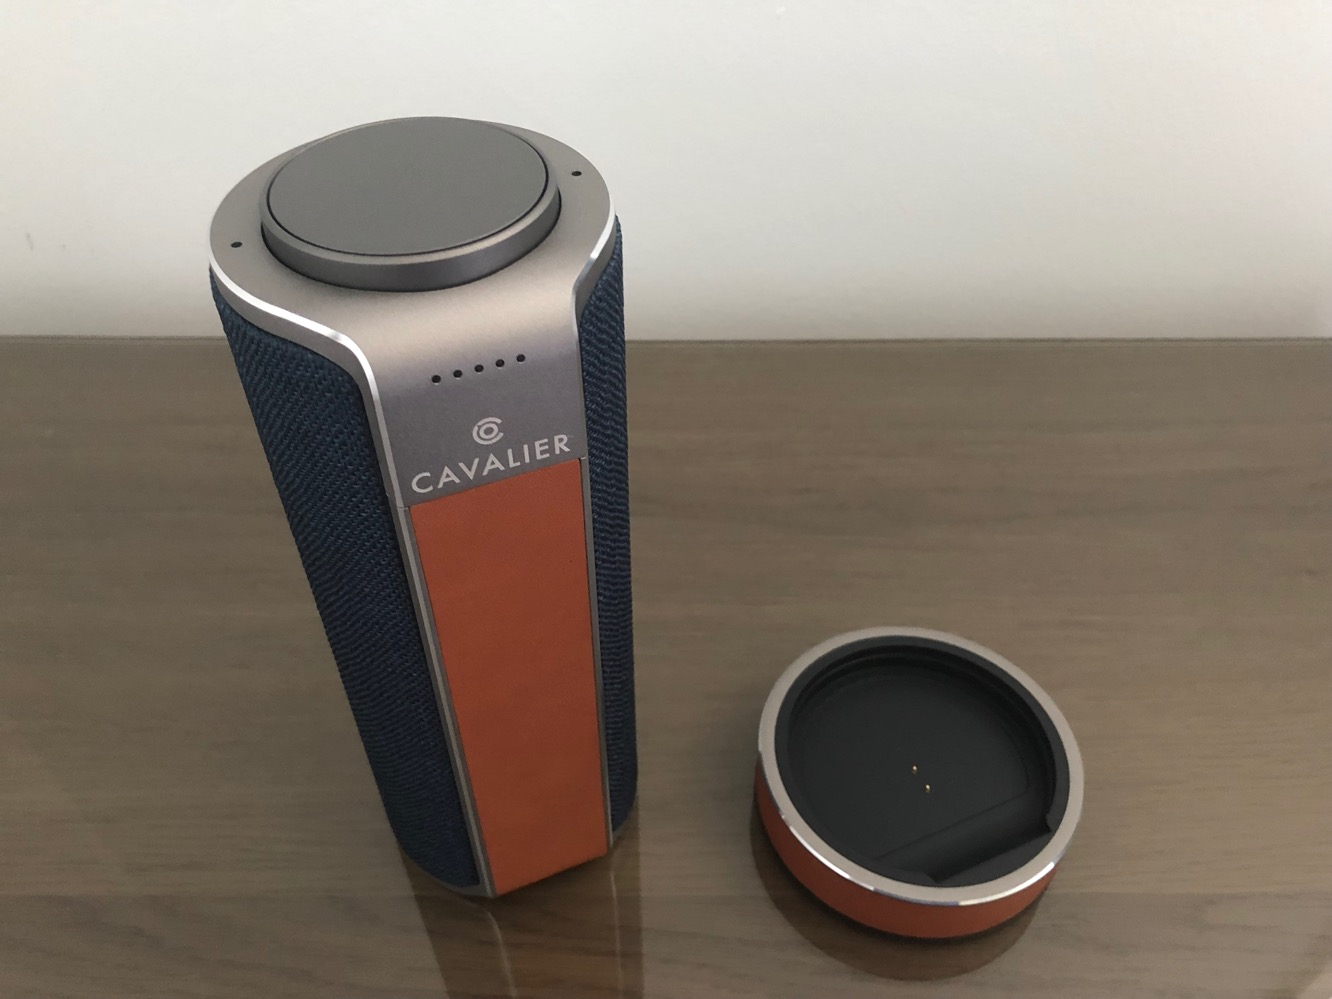 Review: Cavalier The Maverick Portable Bluetooth + WiFi Speaker System with built-in Alexa